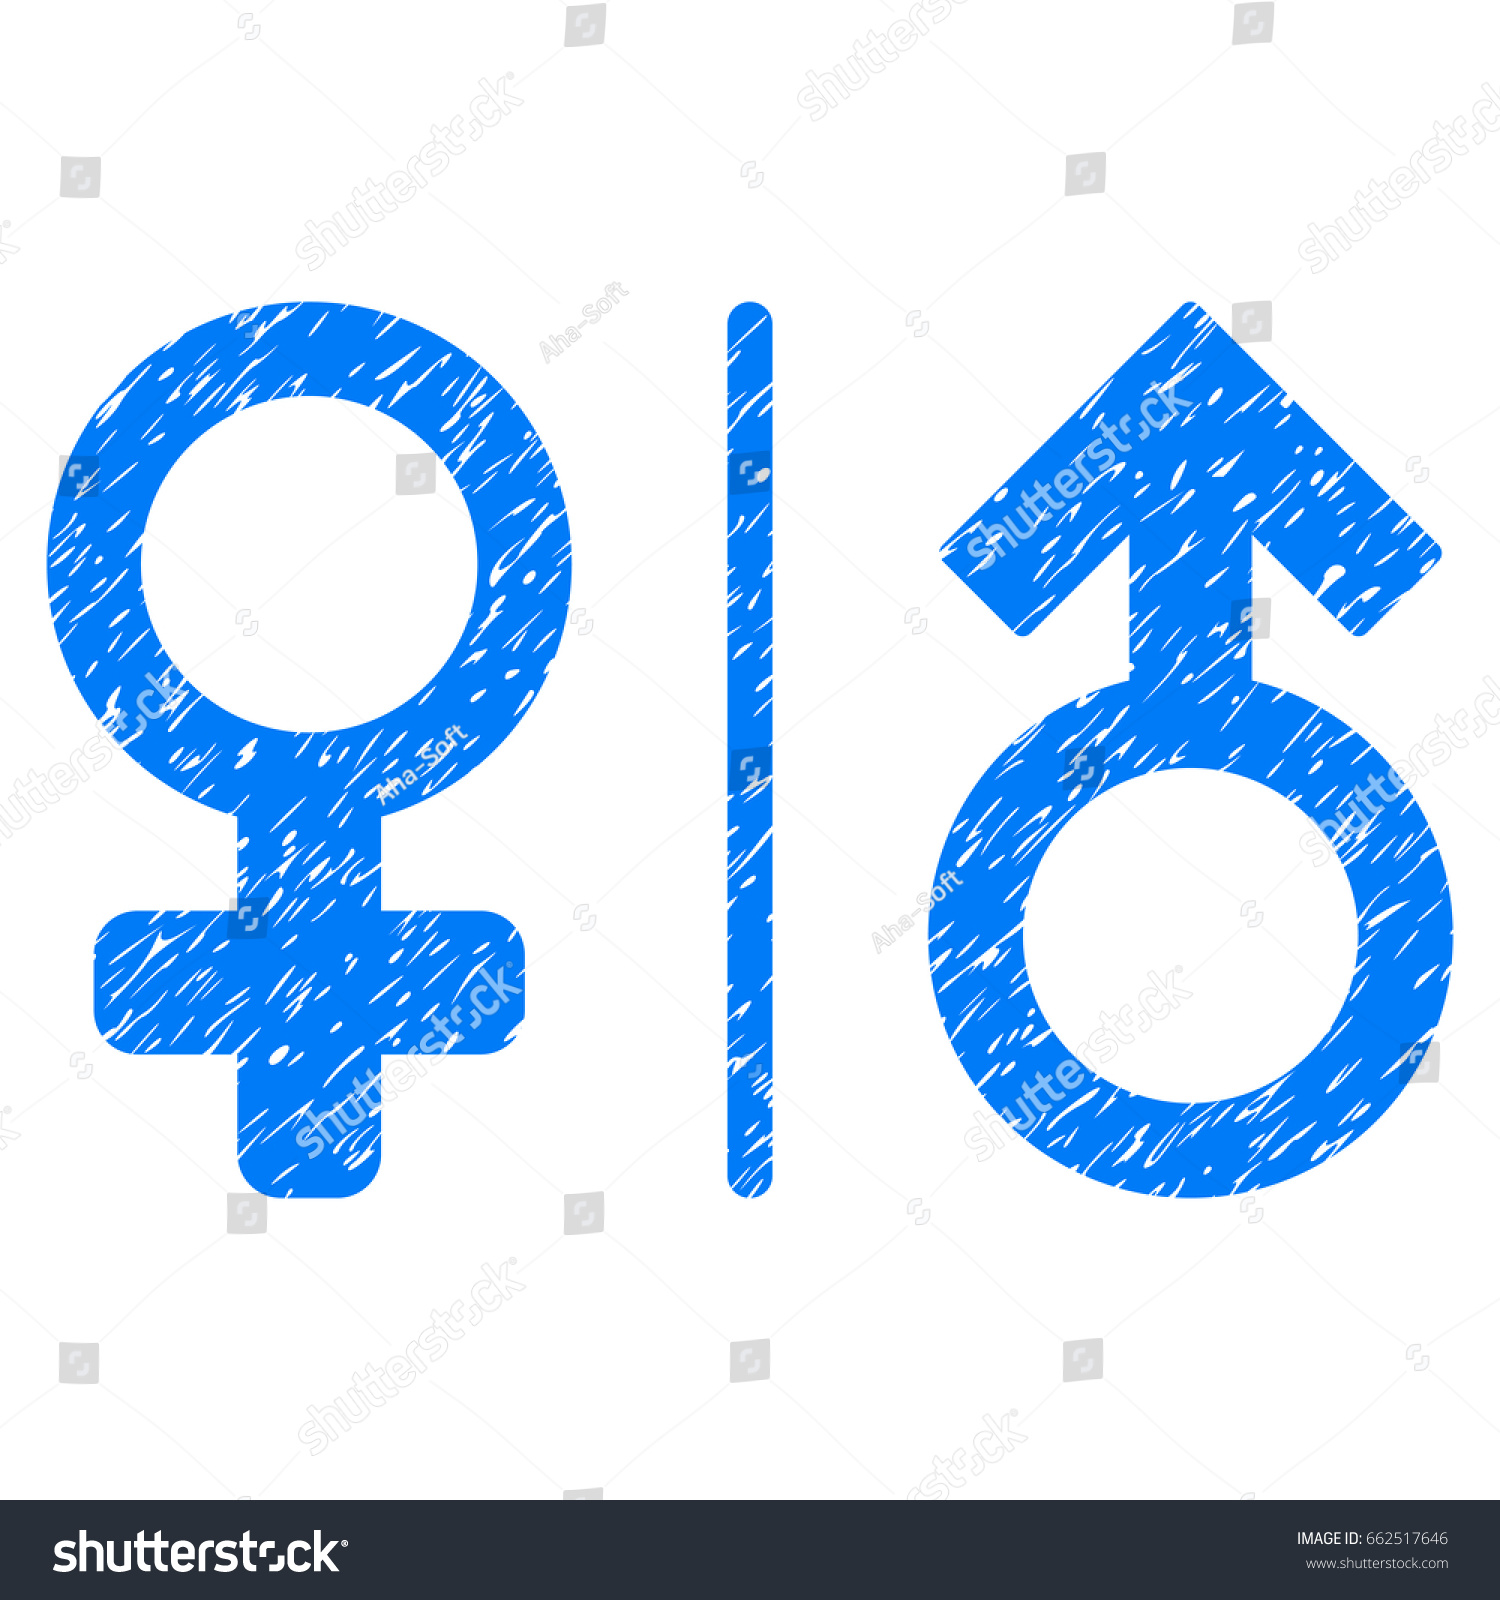 Grunge wc gender symbols icon grunge stock vector 662517646 grunge wc gender symbols icon with grunge design and dirty texture unclean vector blue pictogram buycottarizona Choice Image